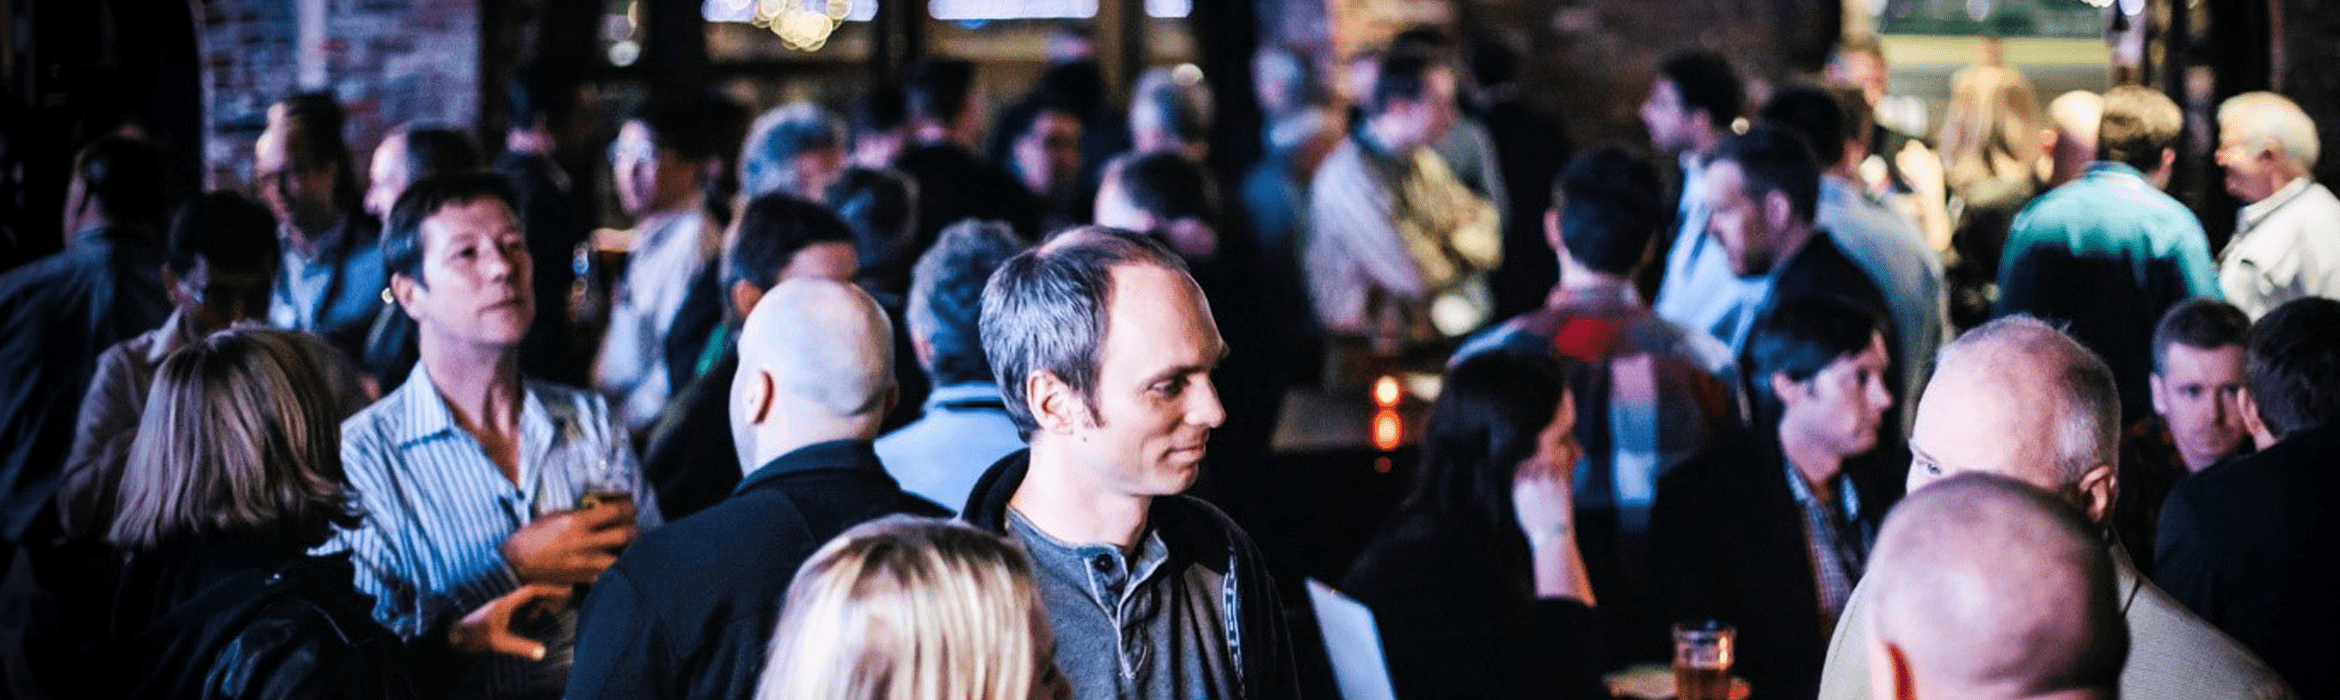 Brother's Guide to Retail Tech Events: Rethink! Internet of Retail Minds